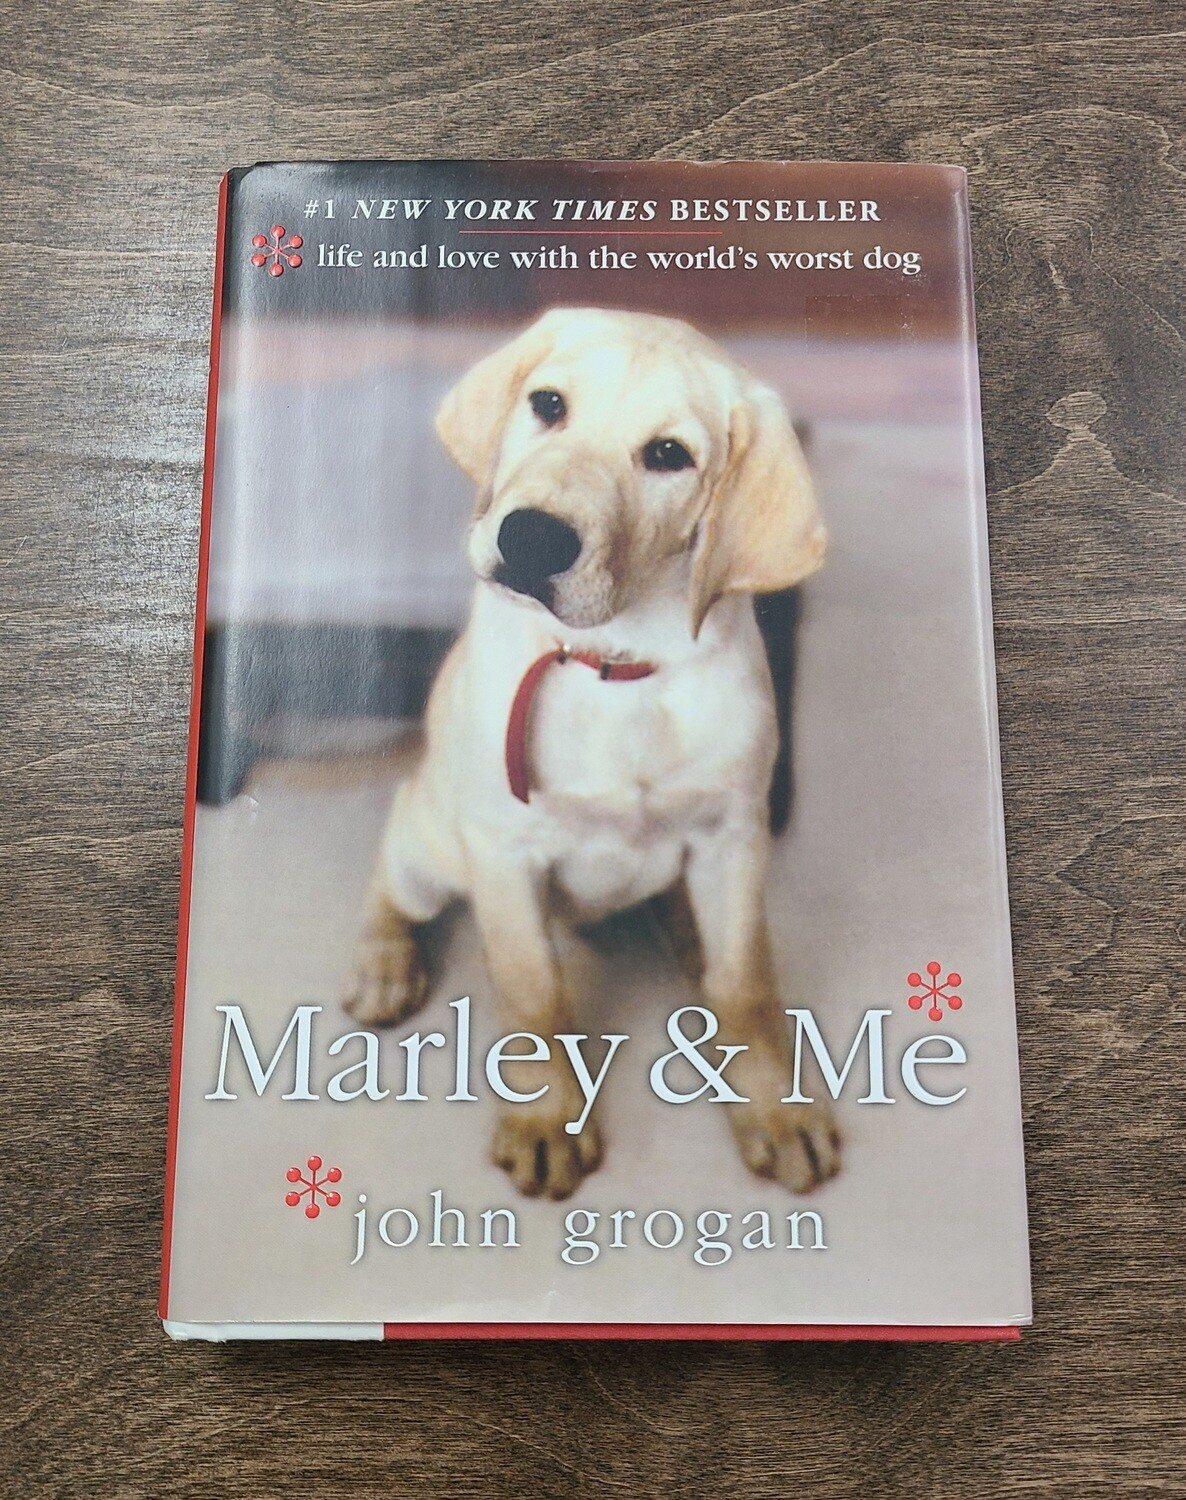 Marley and Me: Life and Love with the World's Worst Dog by John Grogan